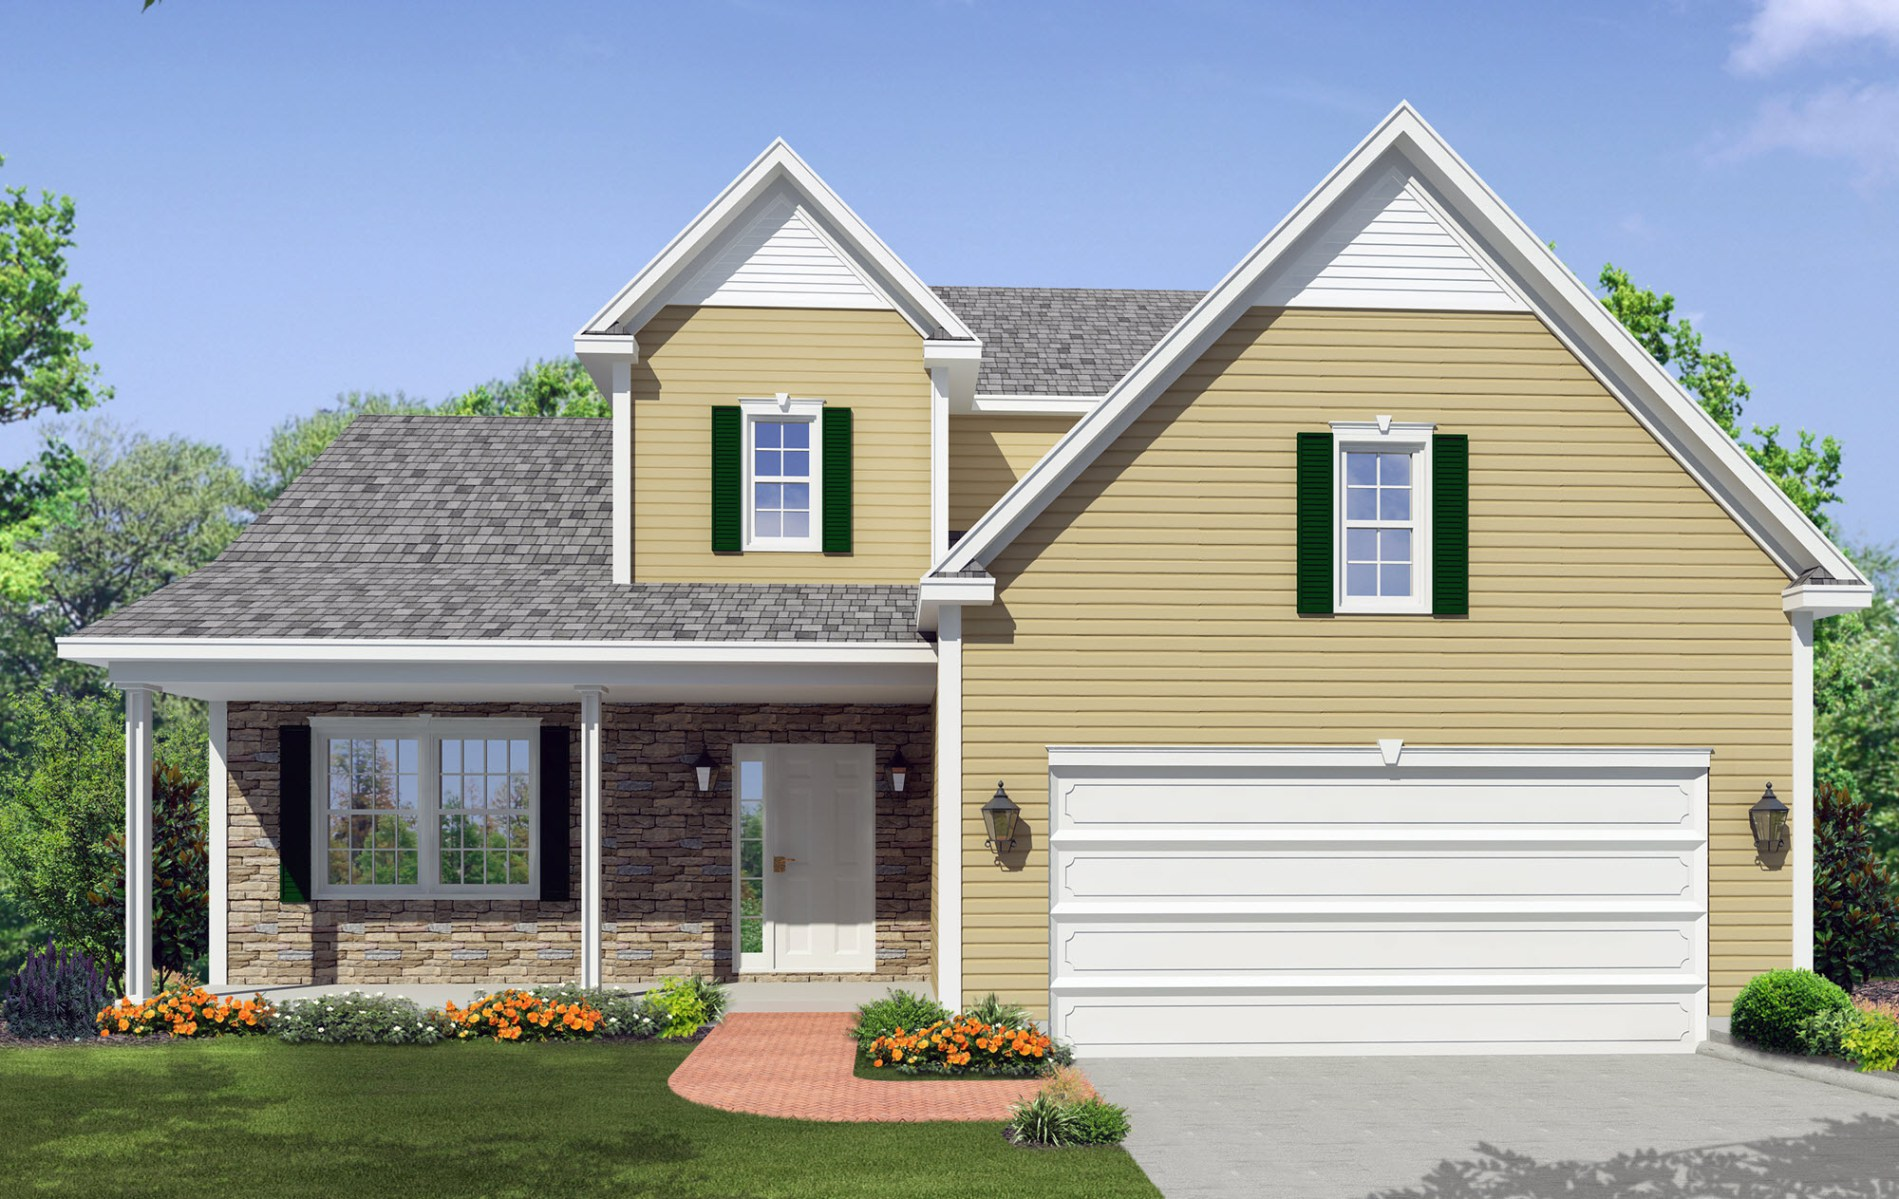 The Basswood New Home Construction in Ballston Lake, NY Saratoga County, NY & Clifton Park, NY